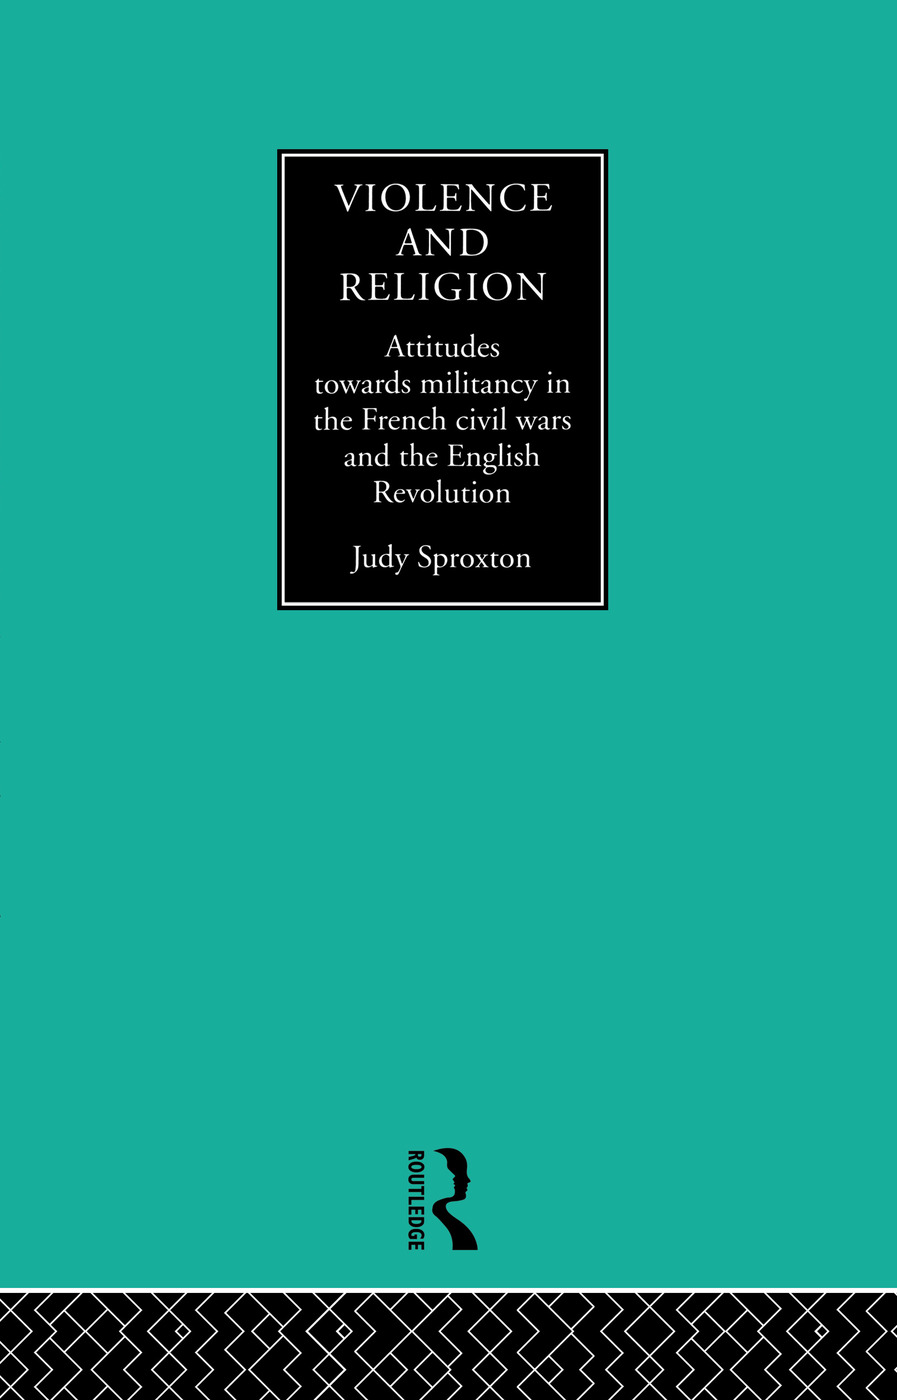 Violence and Religion: Attitudes towards militancy in the French civil wars and the English Revolution, 1st Edition (Paperback) book cover